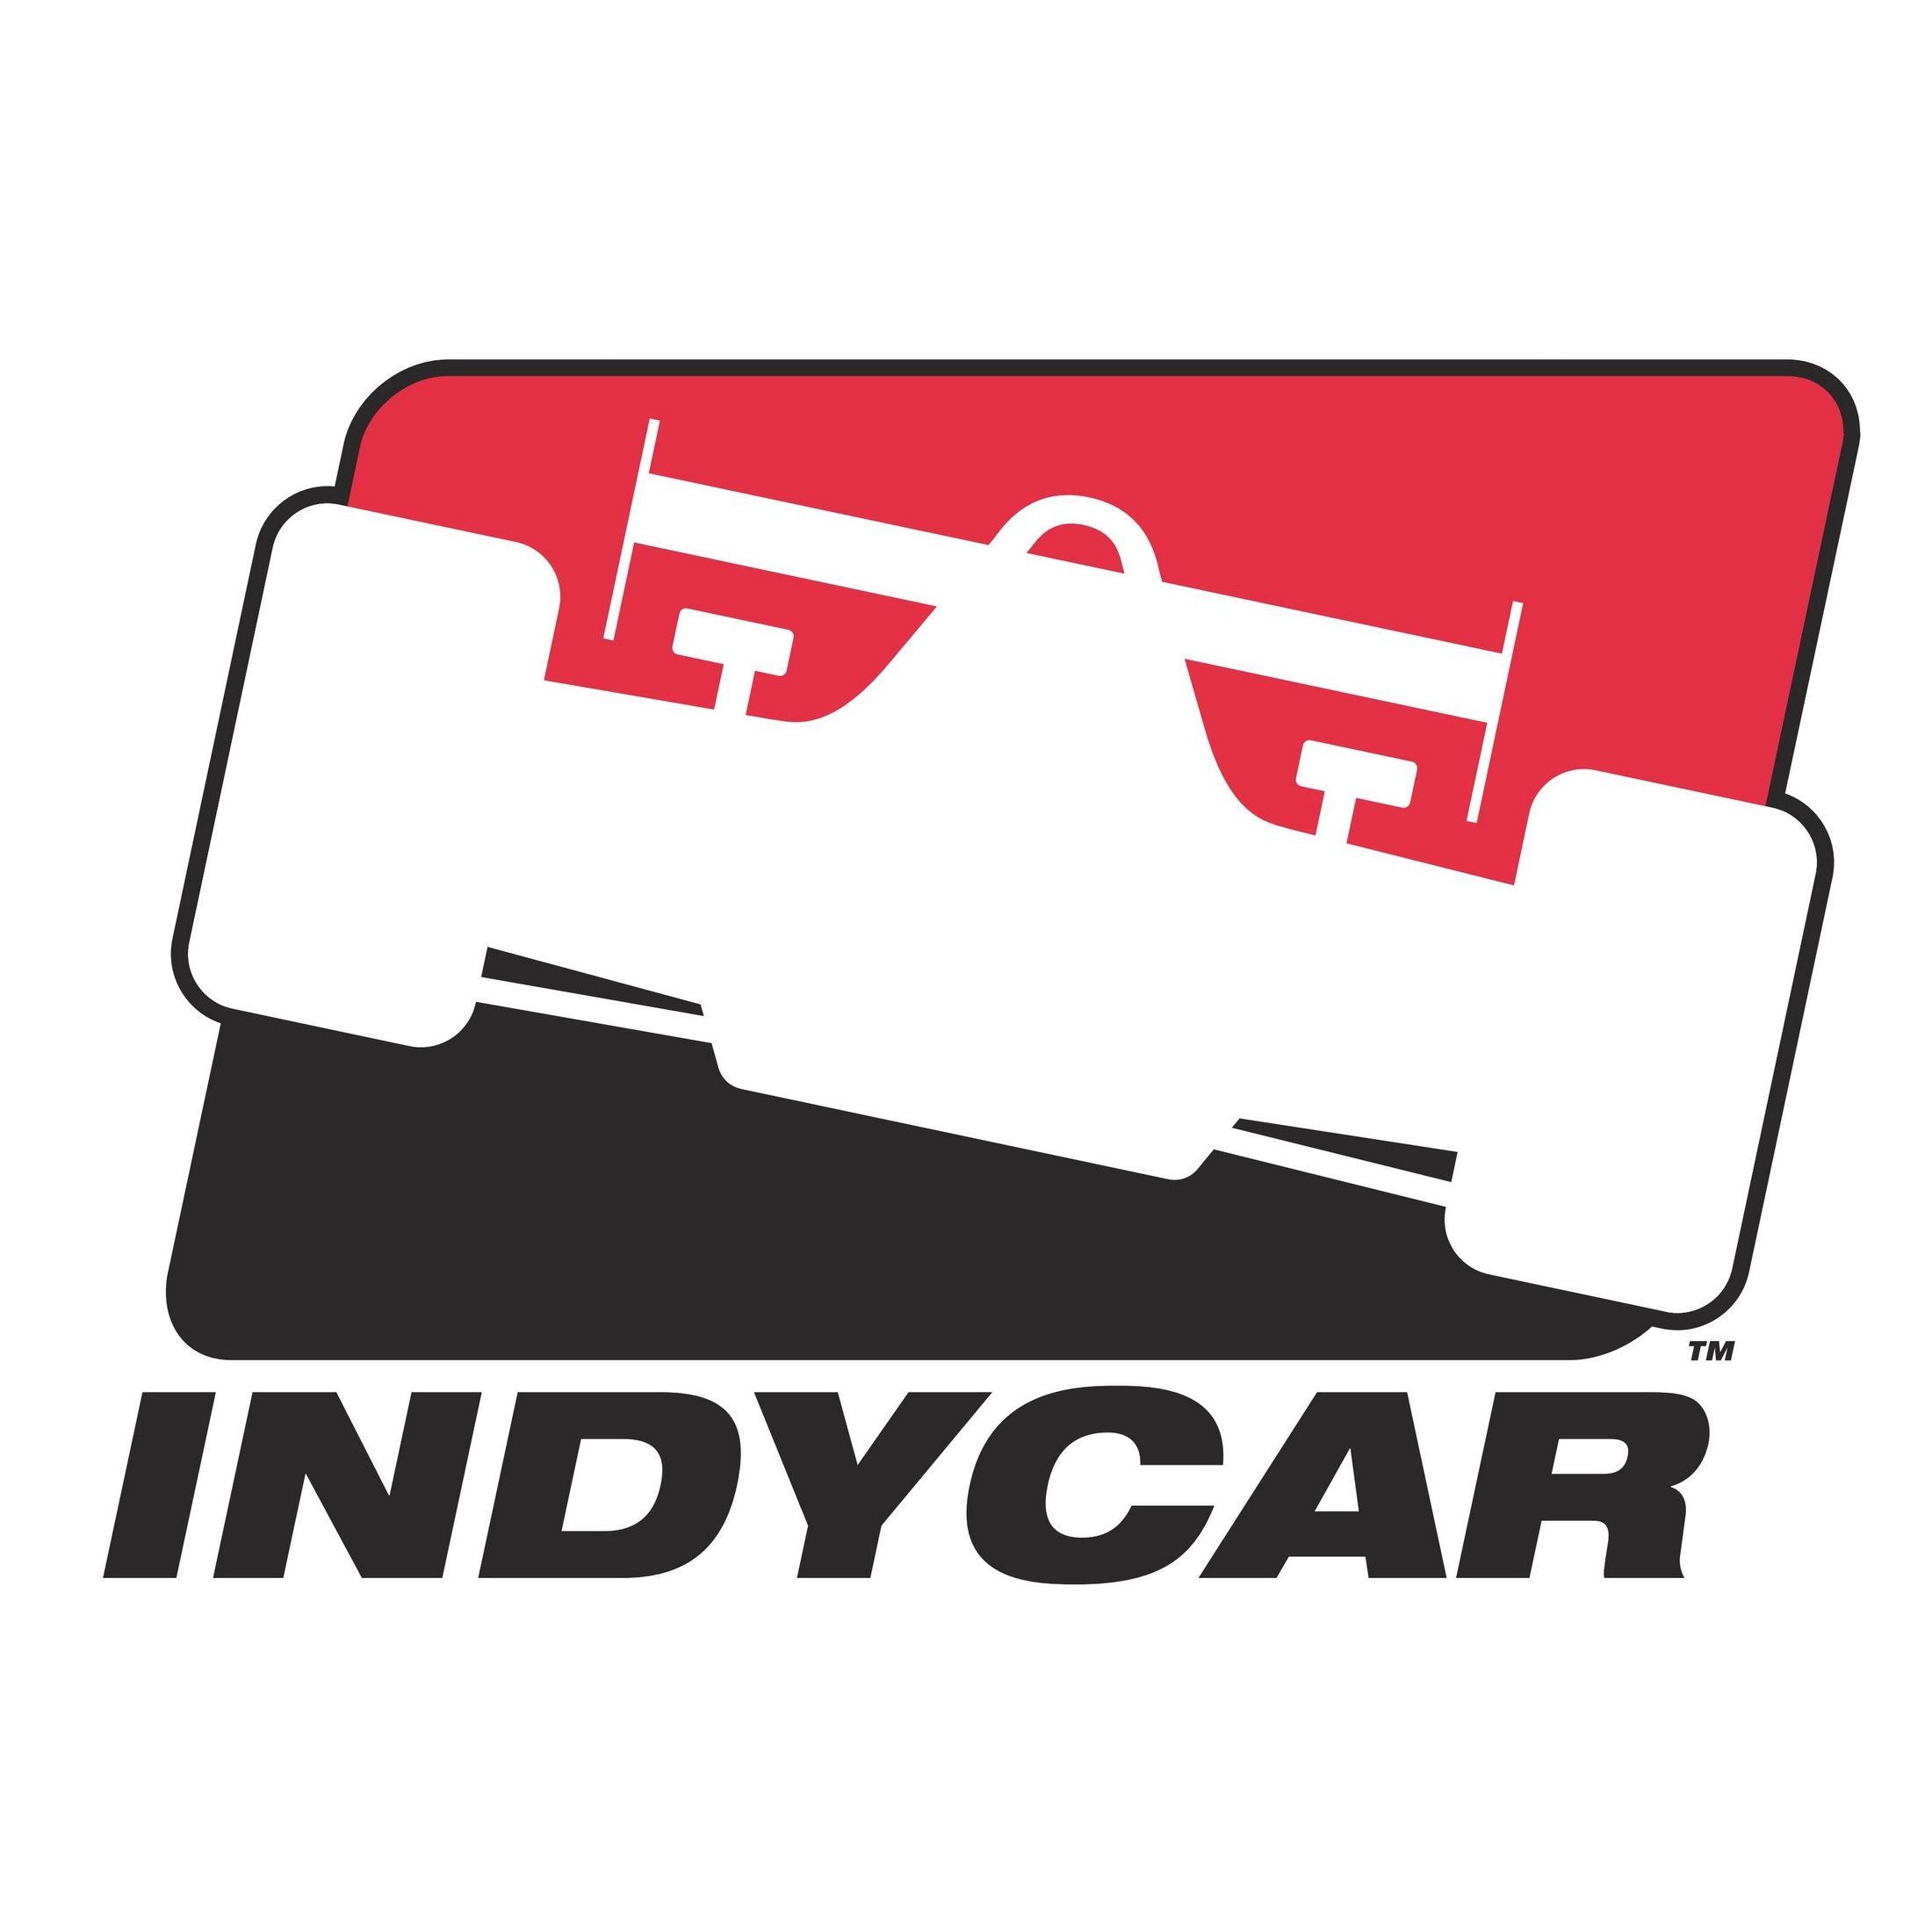 2015 IndyCar - Grand Prix of Indianapolis